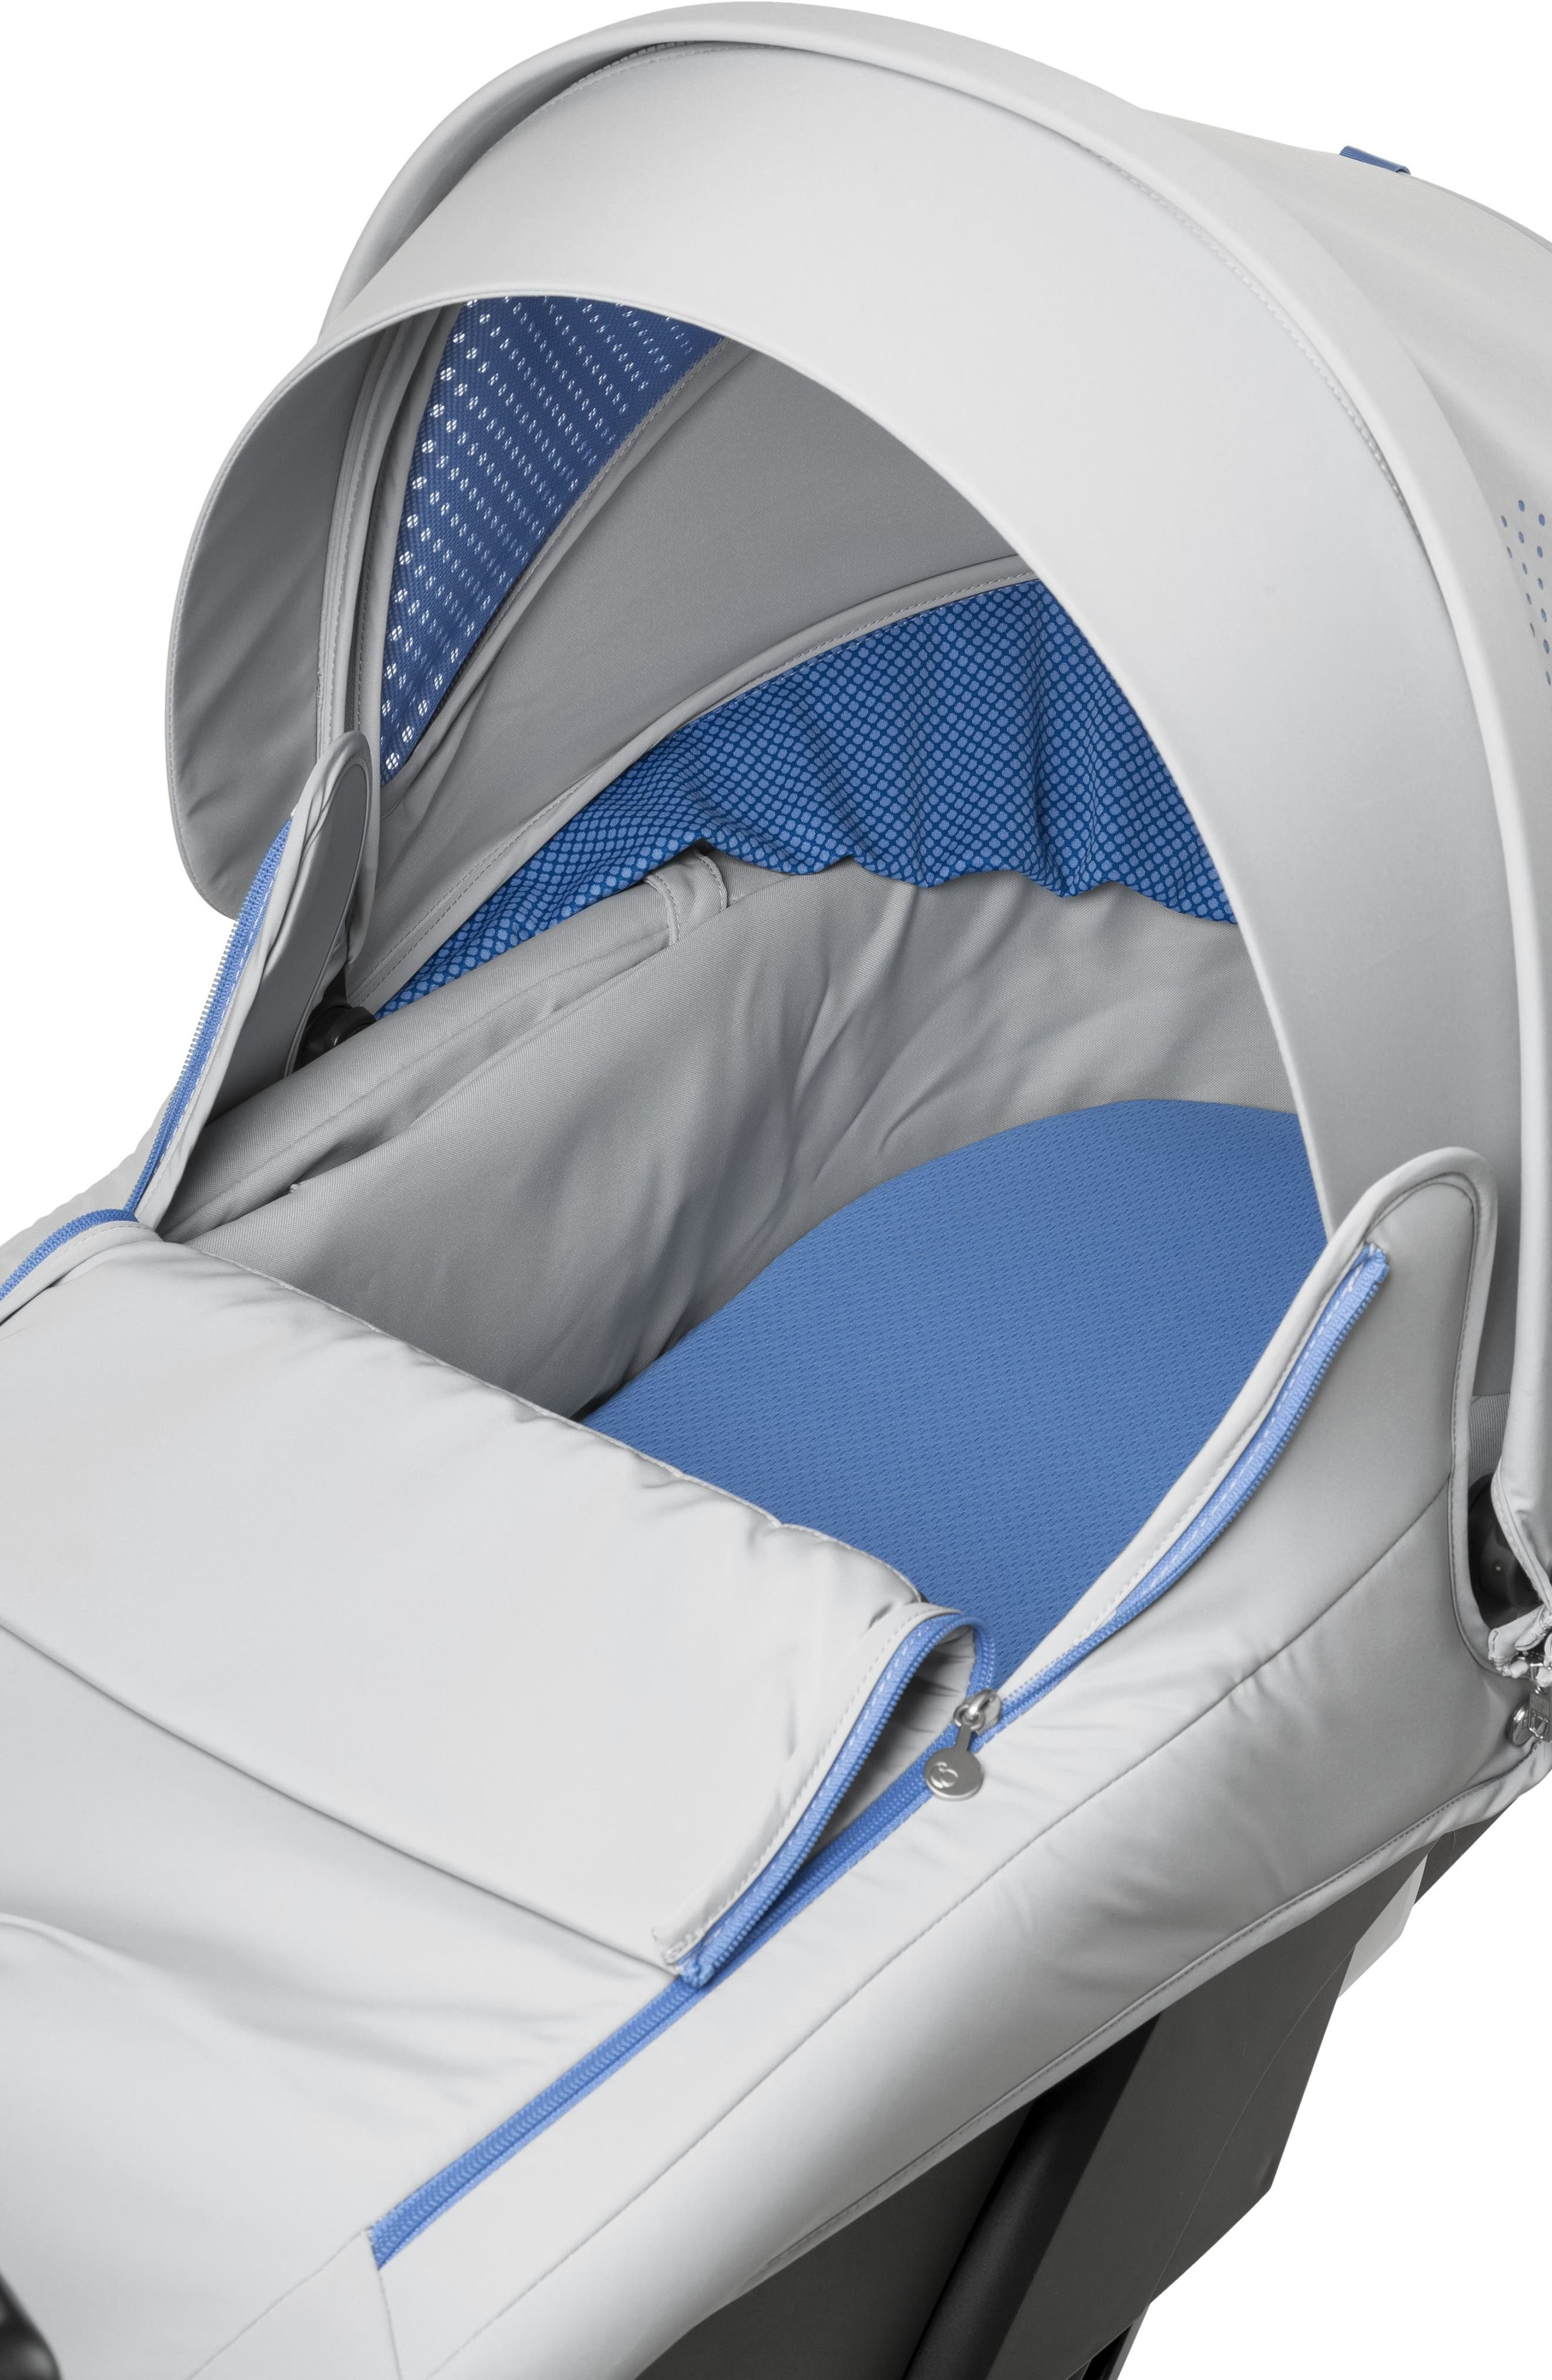 Xplory<sup>®</sup> Athleisure Stroller Carry Cot Attachment,                             Alternate thumbnail 3, color,                             410